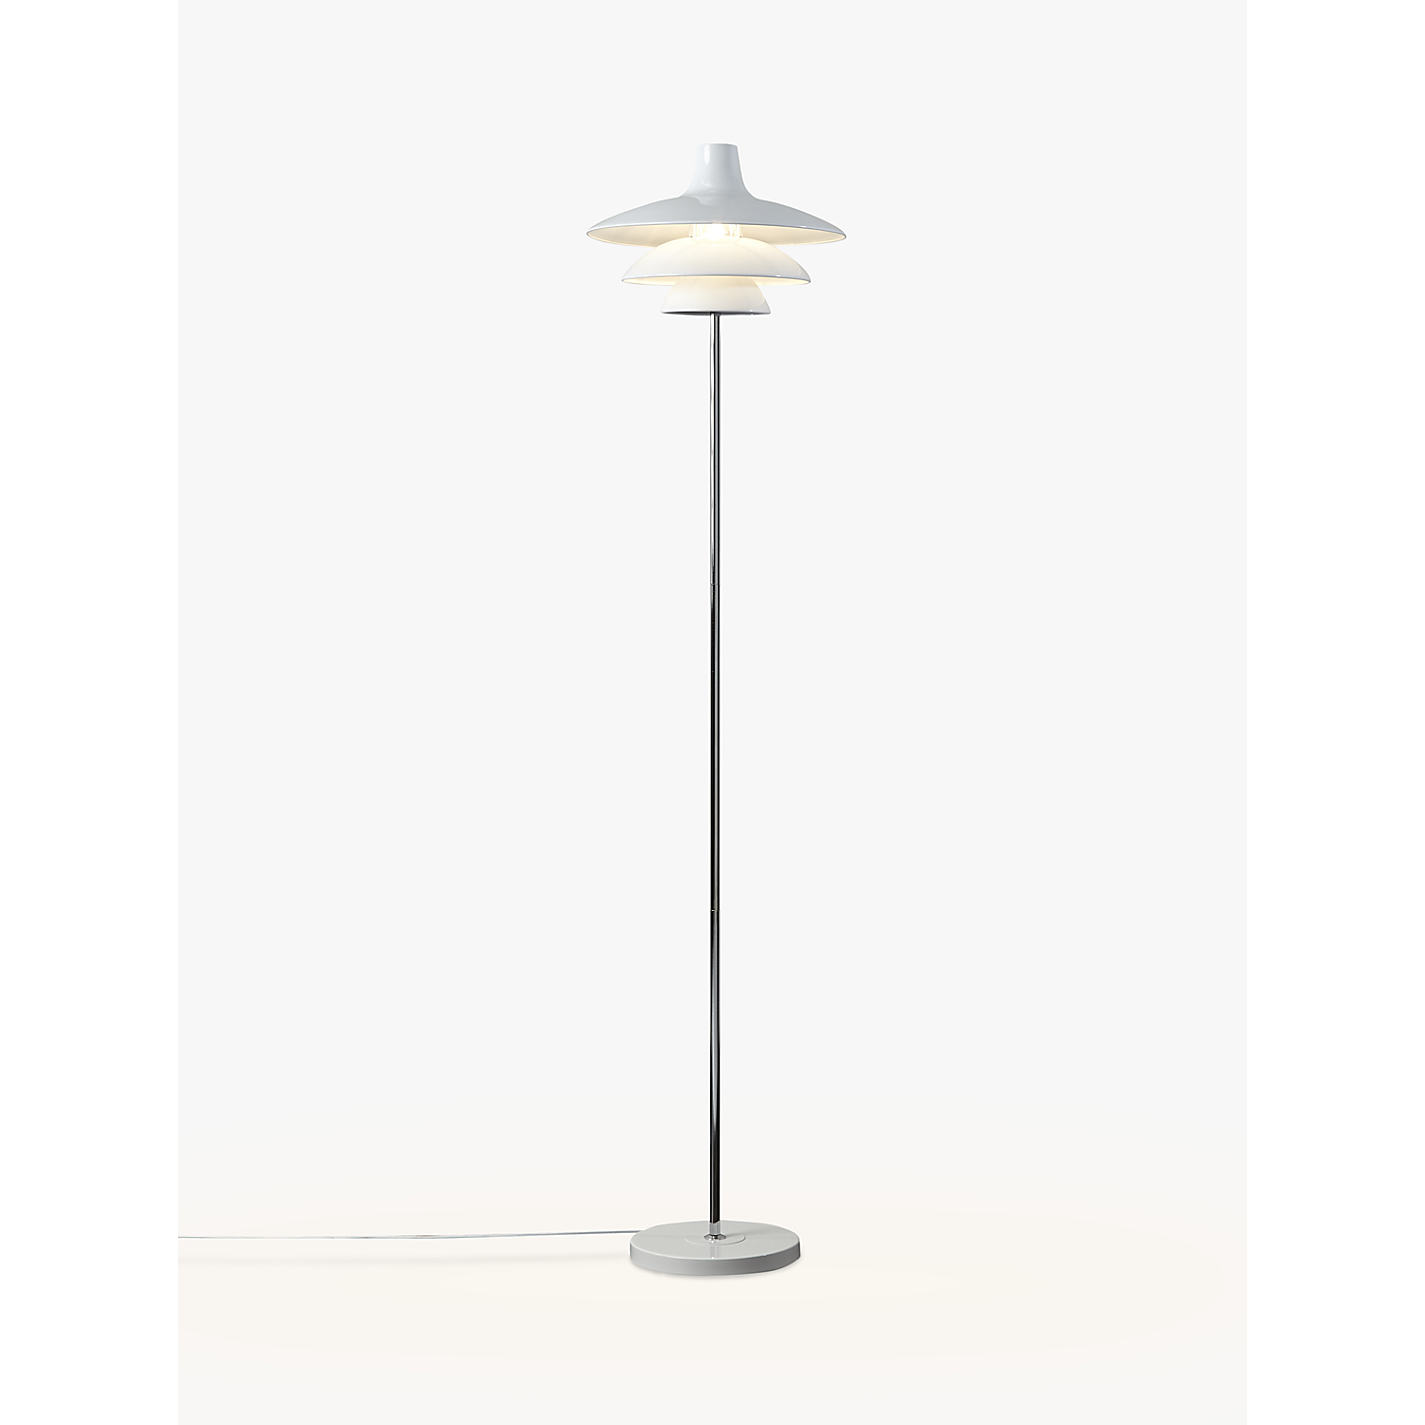 Buy house by john lewis harvey floor lamp white john lewis buy house by john lewis harvey floor lamp white online at johnlewis geotapseo Image collections